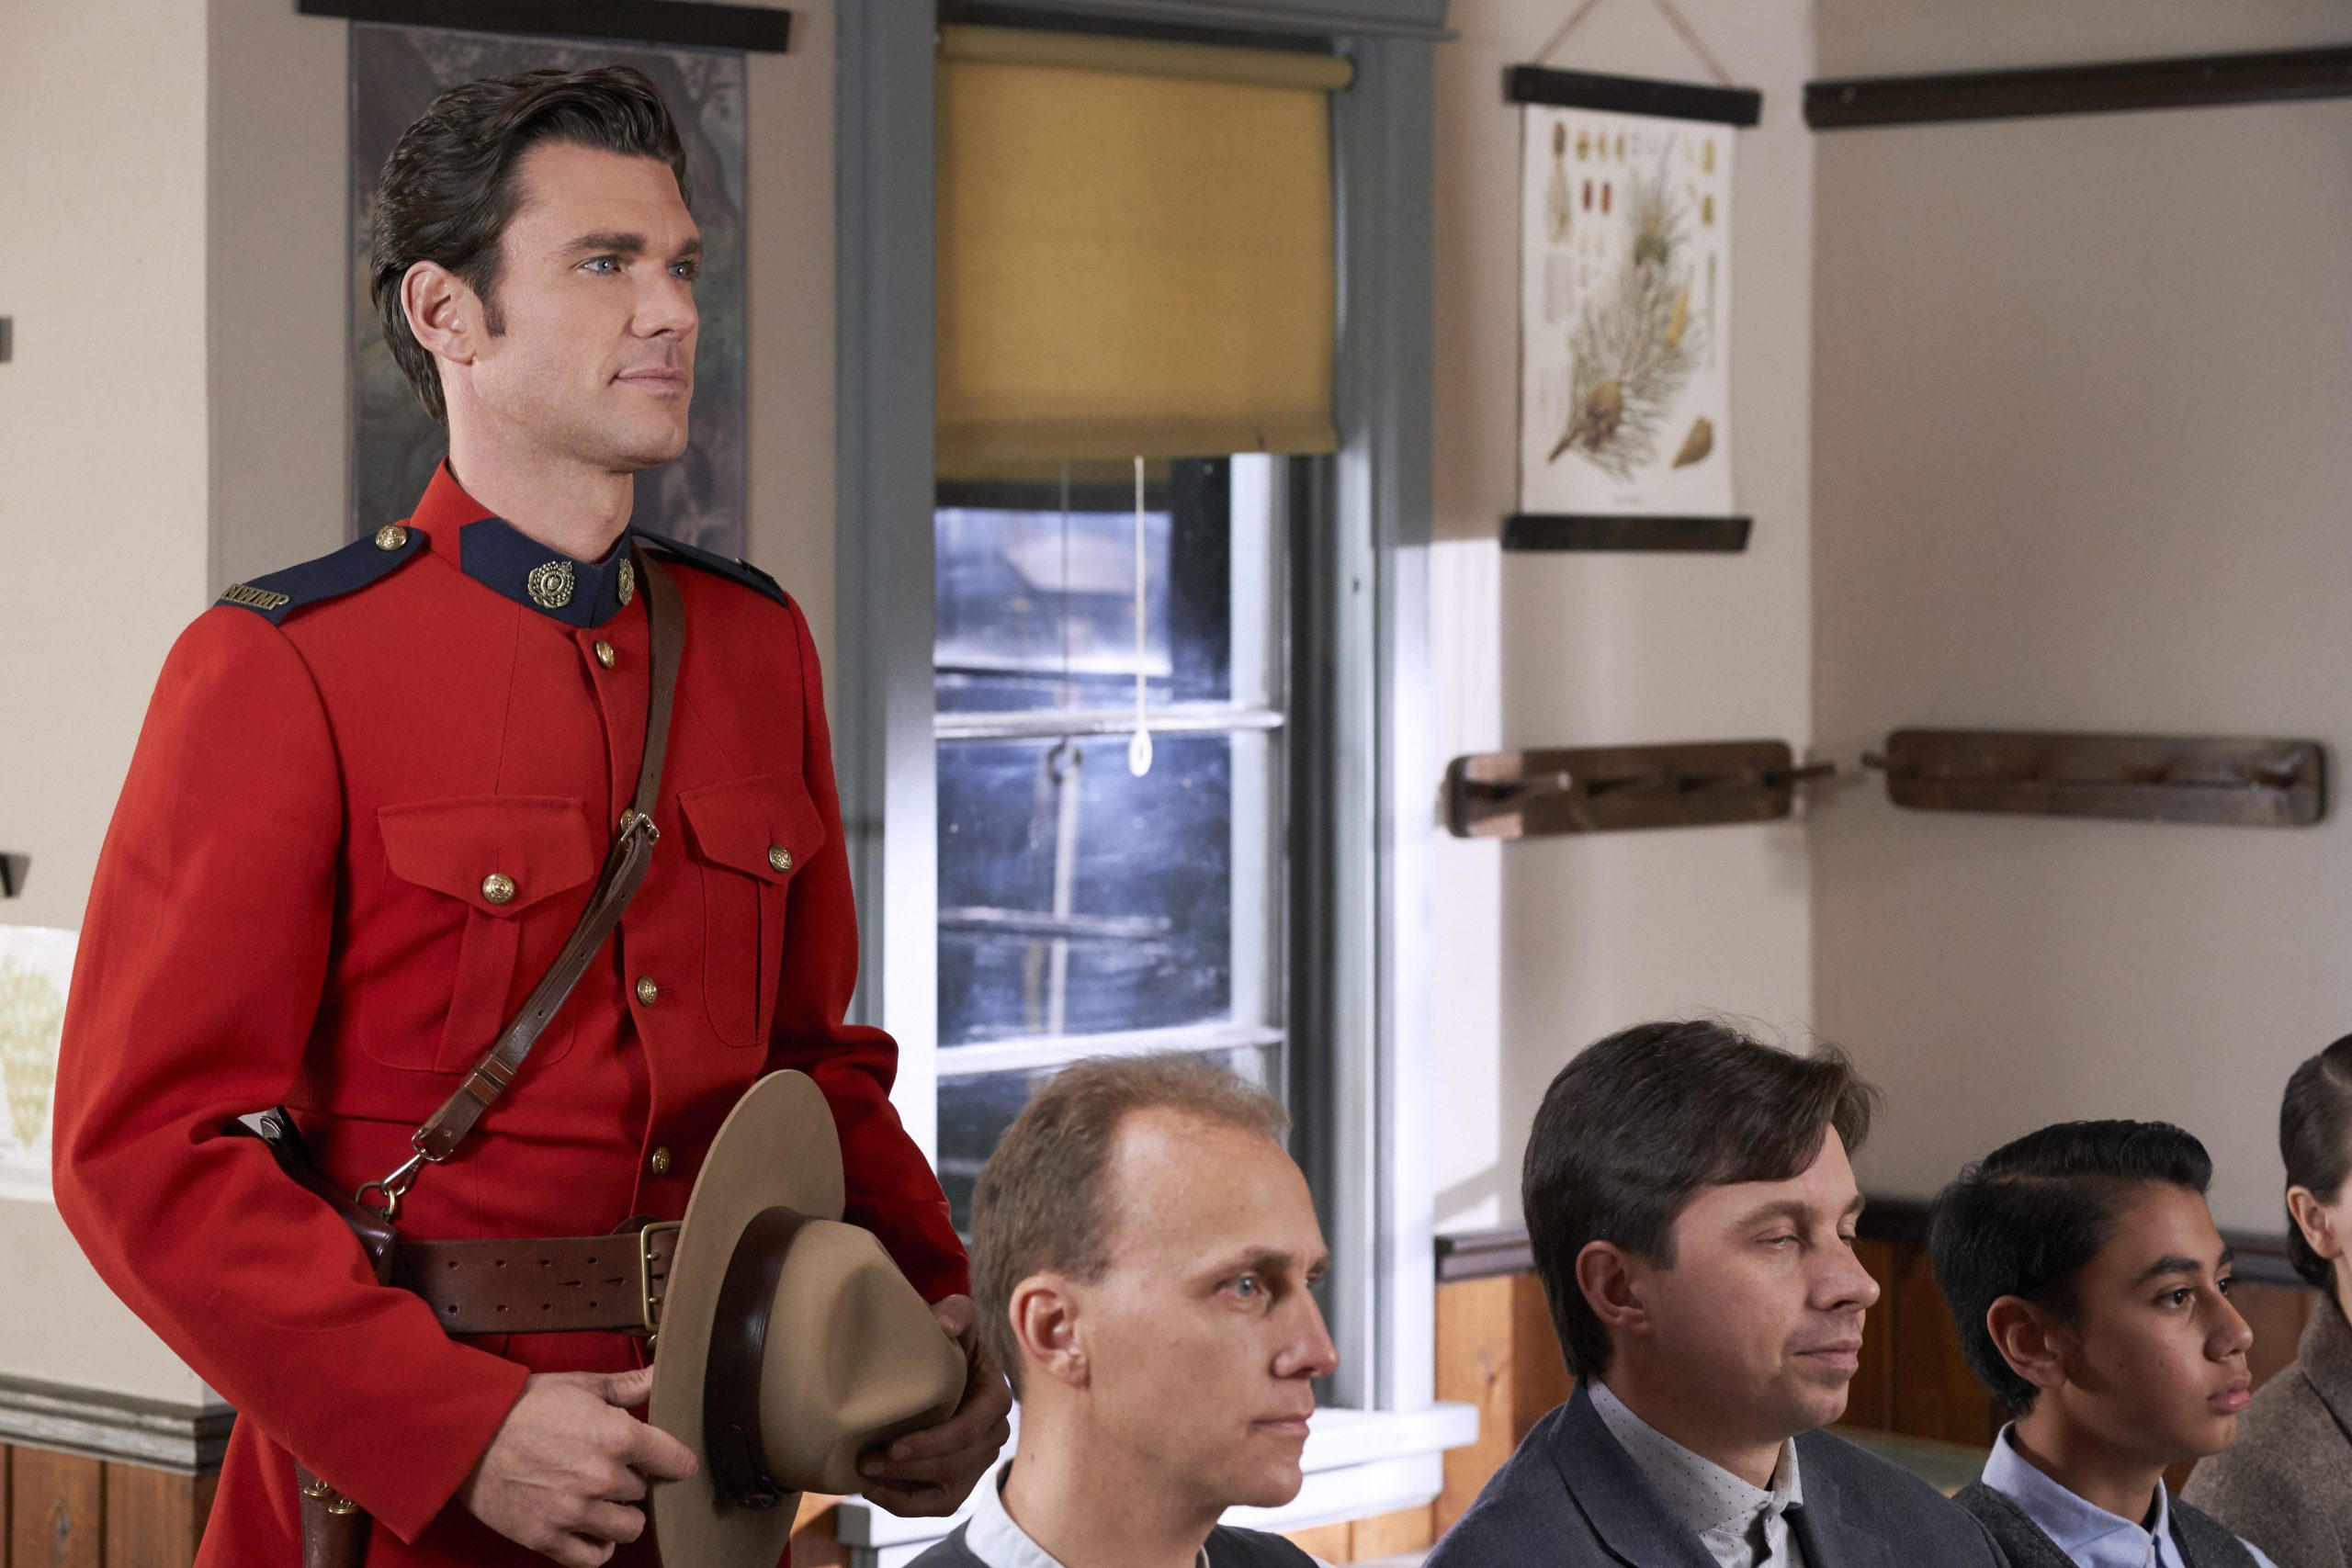 Kevin McGarry as Nathan, wearing red jacket and holding his hat, in 'When Calls the Heart'